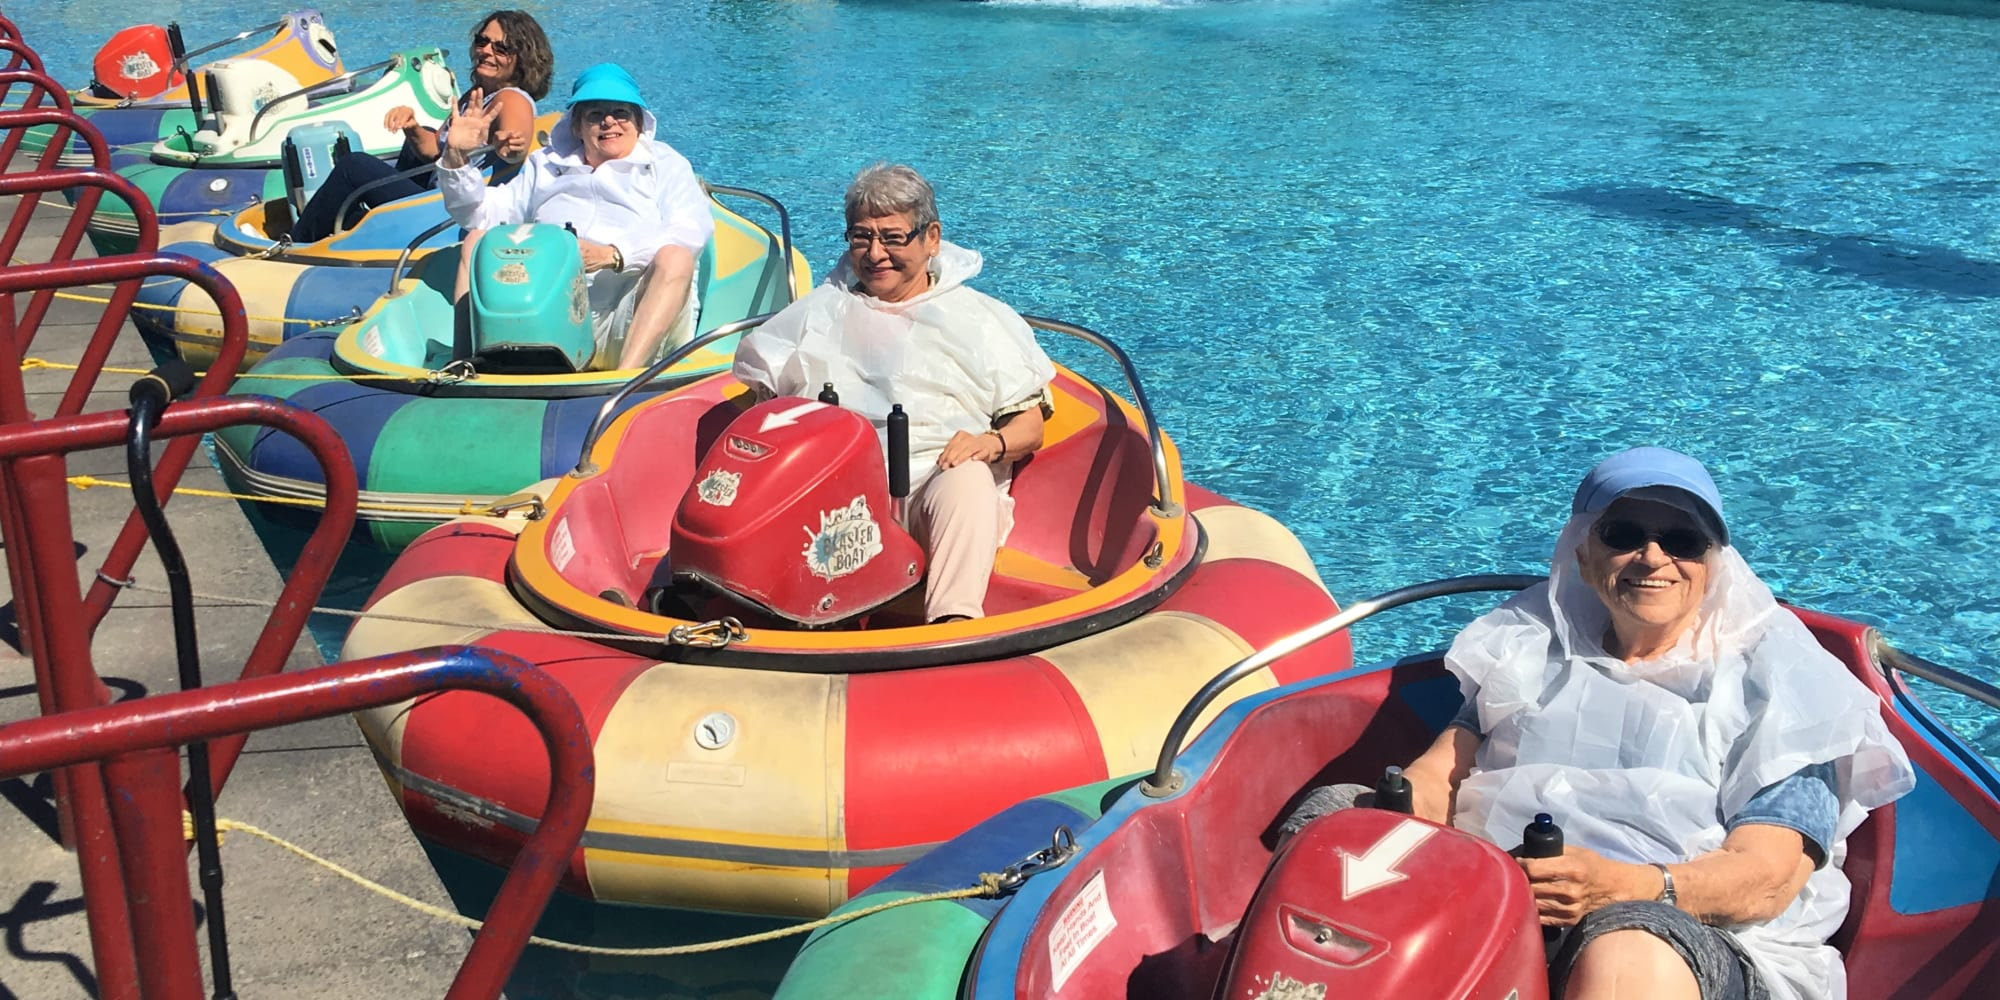 Residents from The Savoy Gracious Retirement Living in Winter Springs, Florida on a water ride